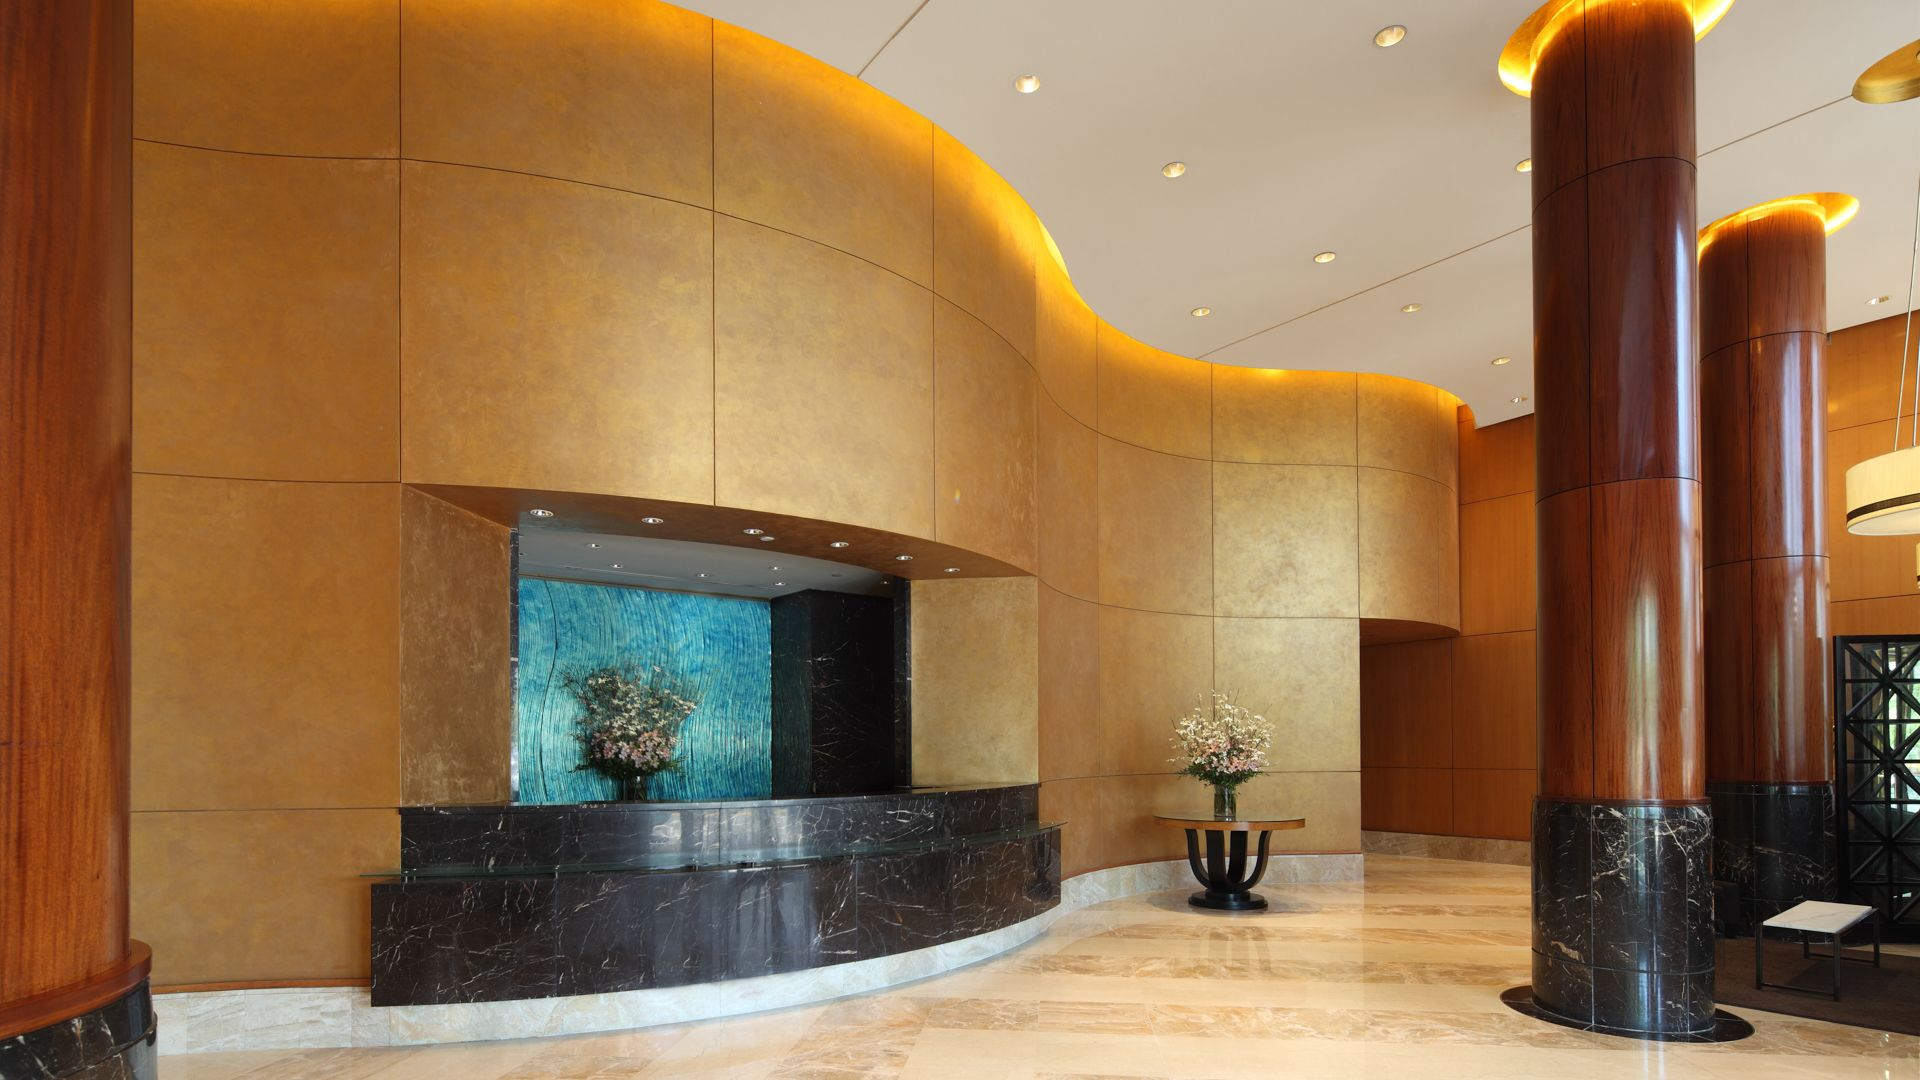 Trump Place 160 Riverside Blvd Apartments - Lobby